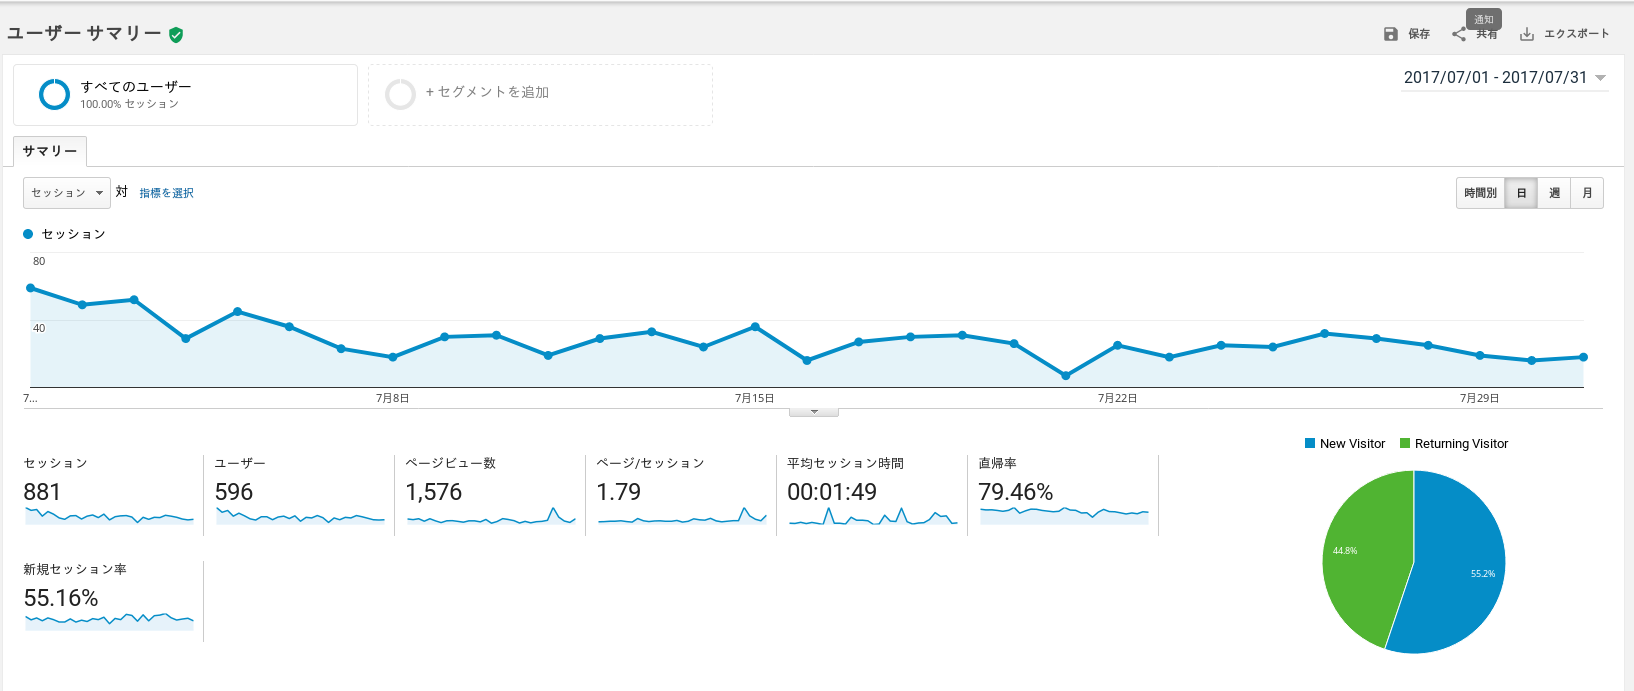 Google Analytics Dashboard for Koipun